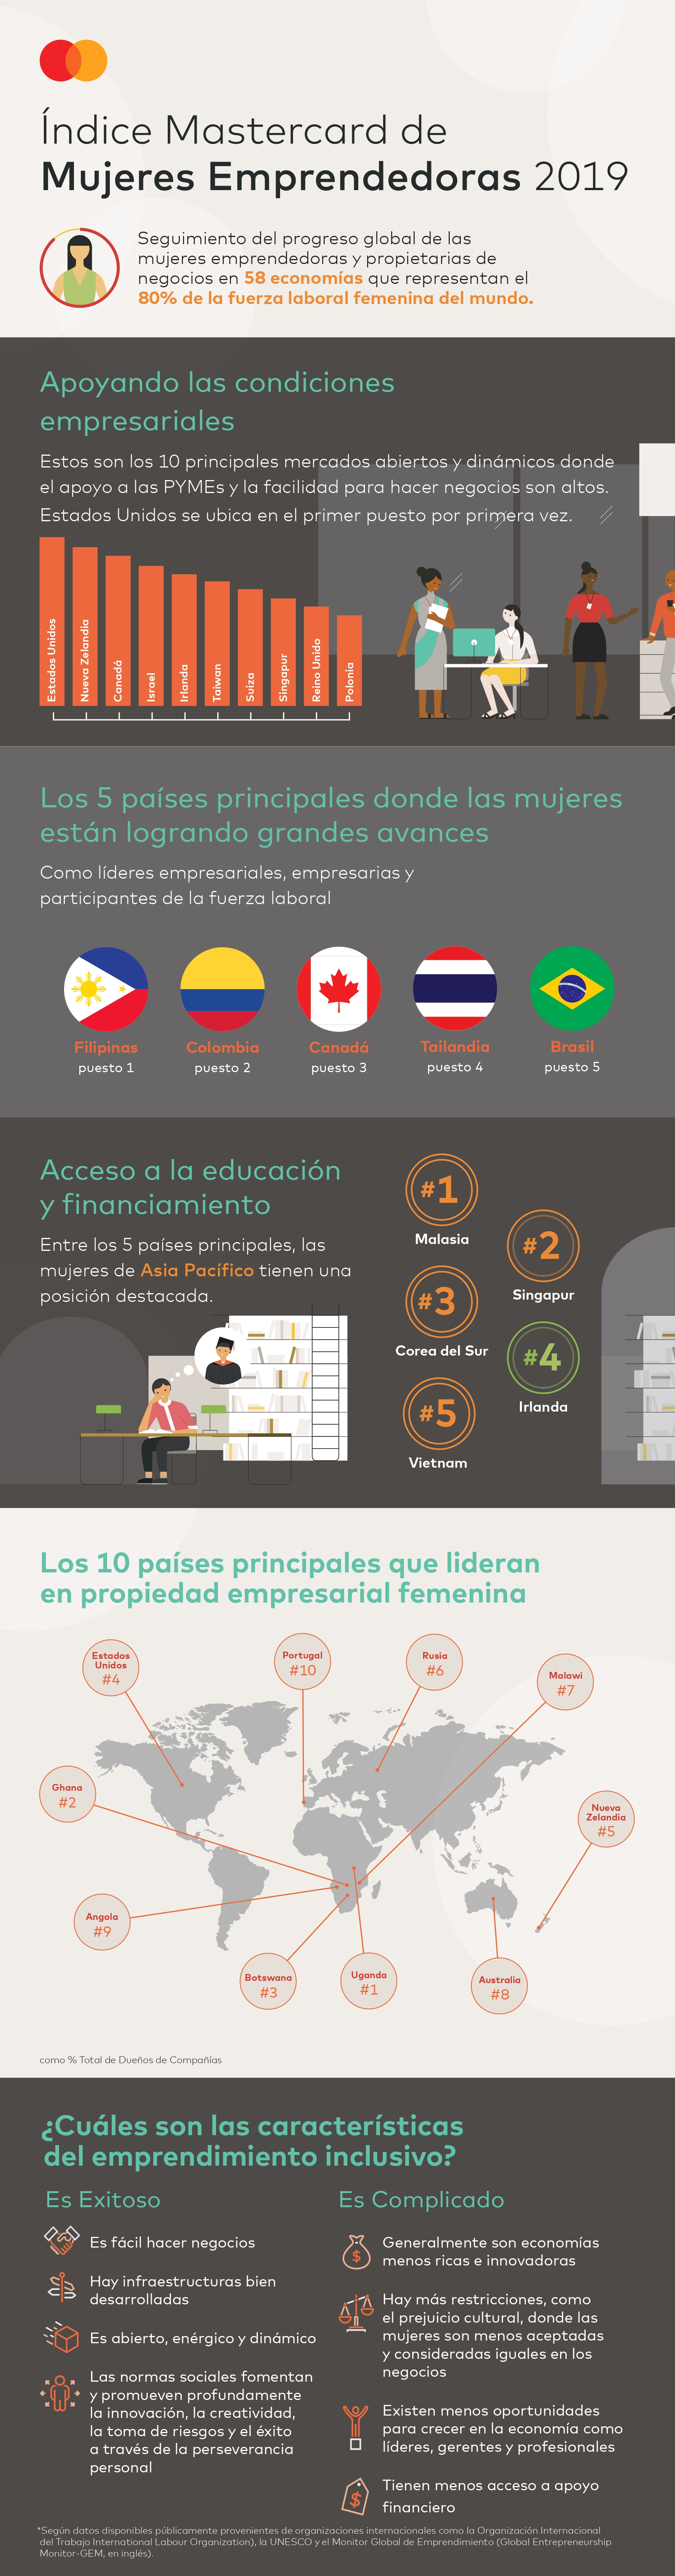 MIWE-2019_Infographic_V12_es_page-0001